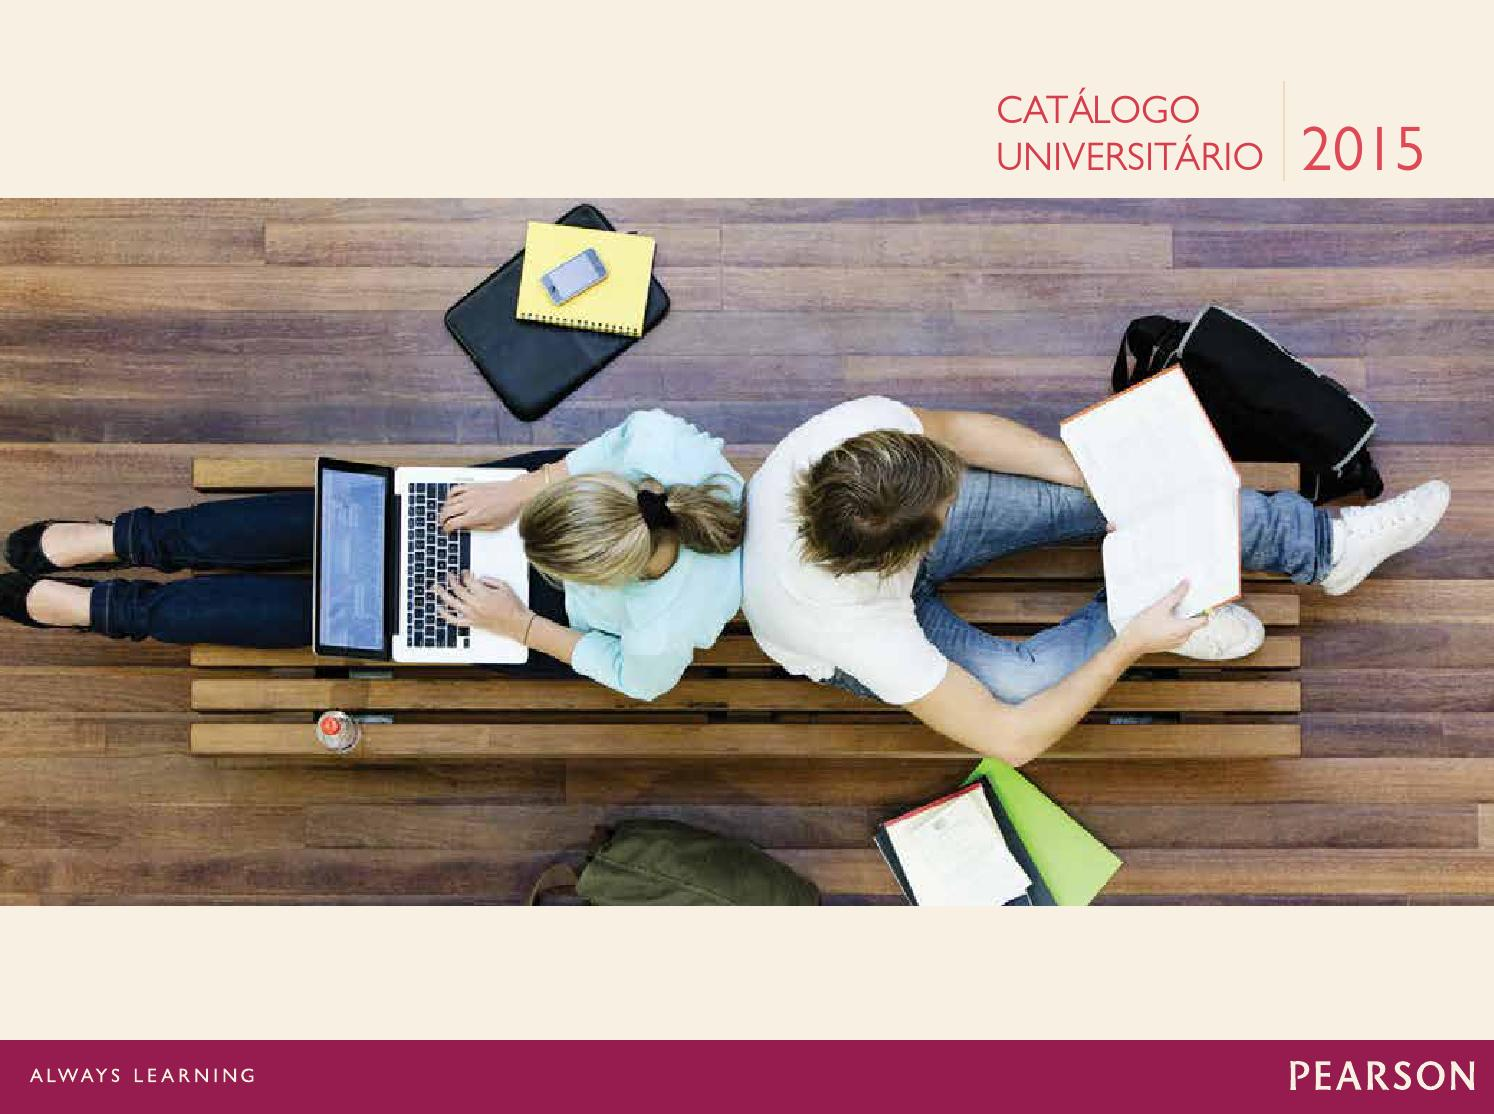 Catlogo universitrio 2015 by marketingpearson issuu fandeluxe Images